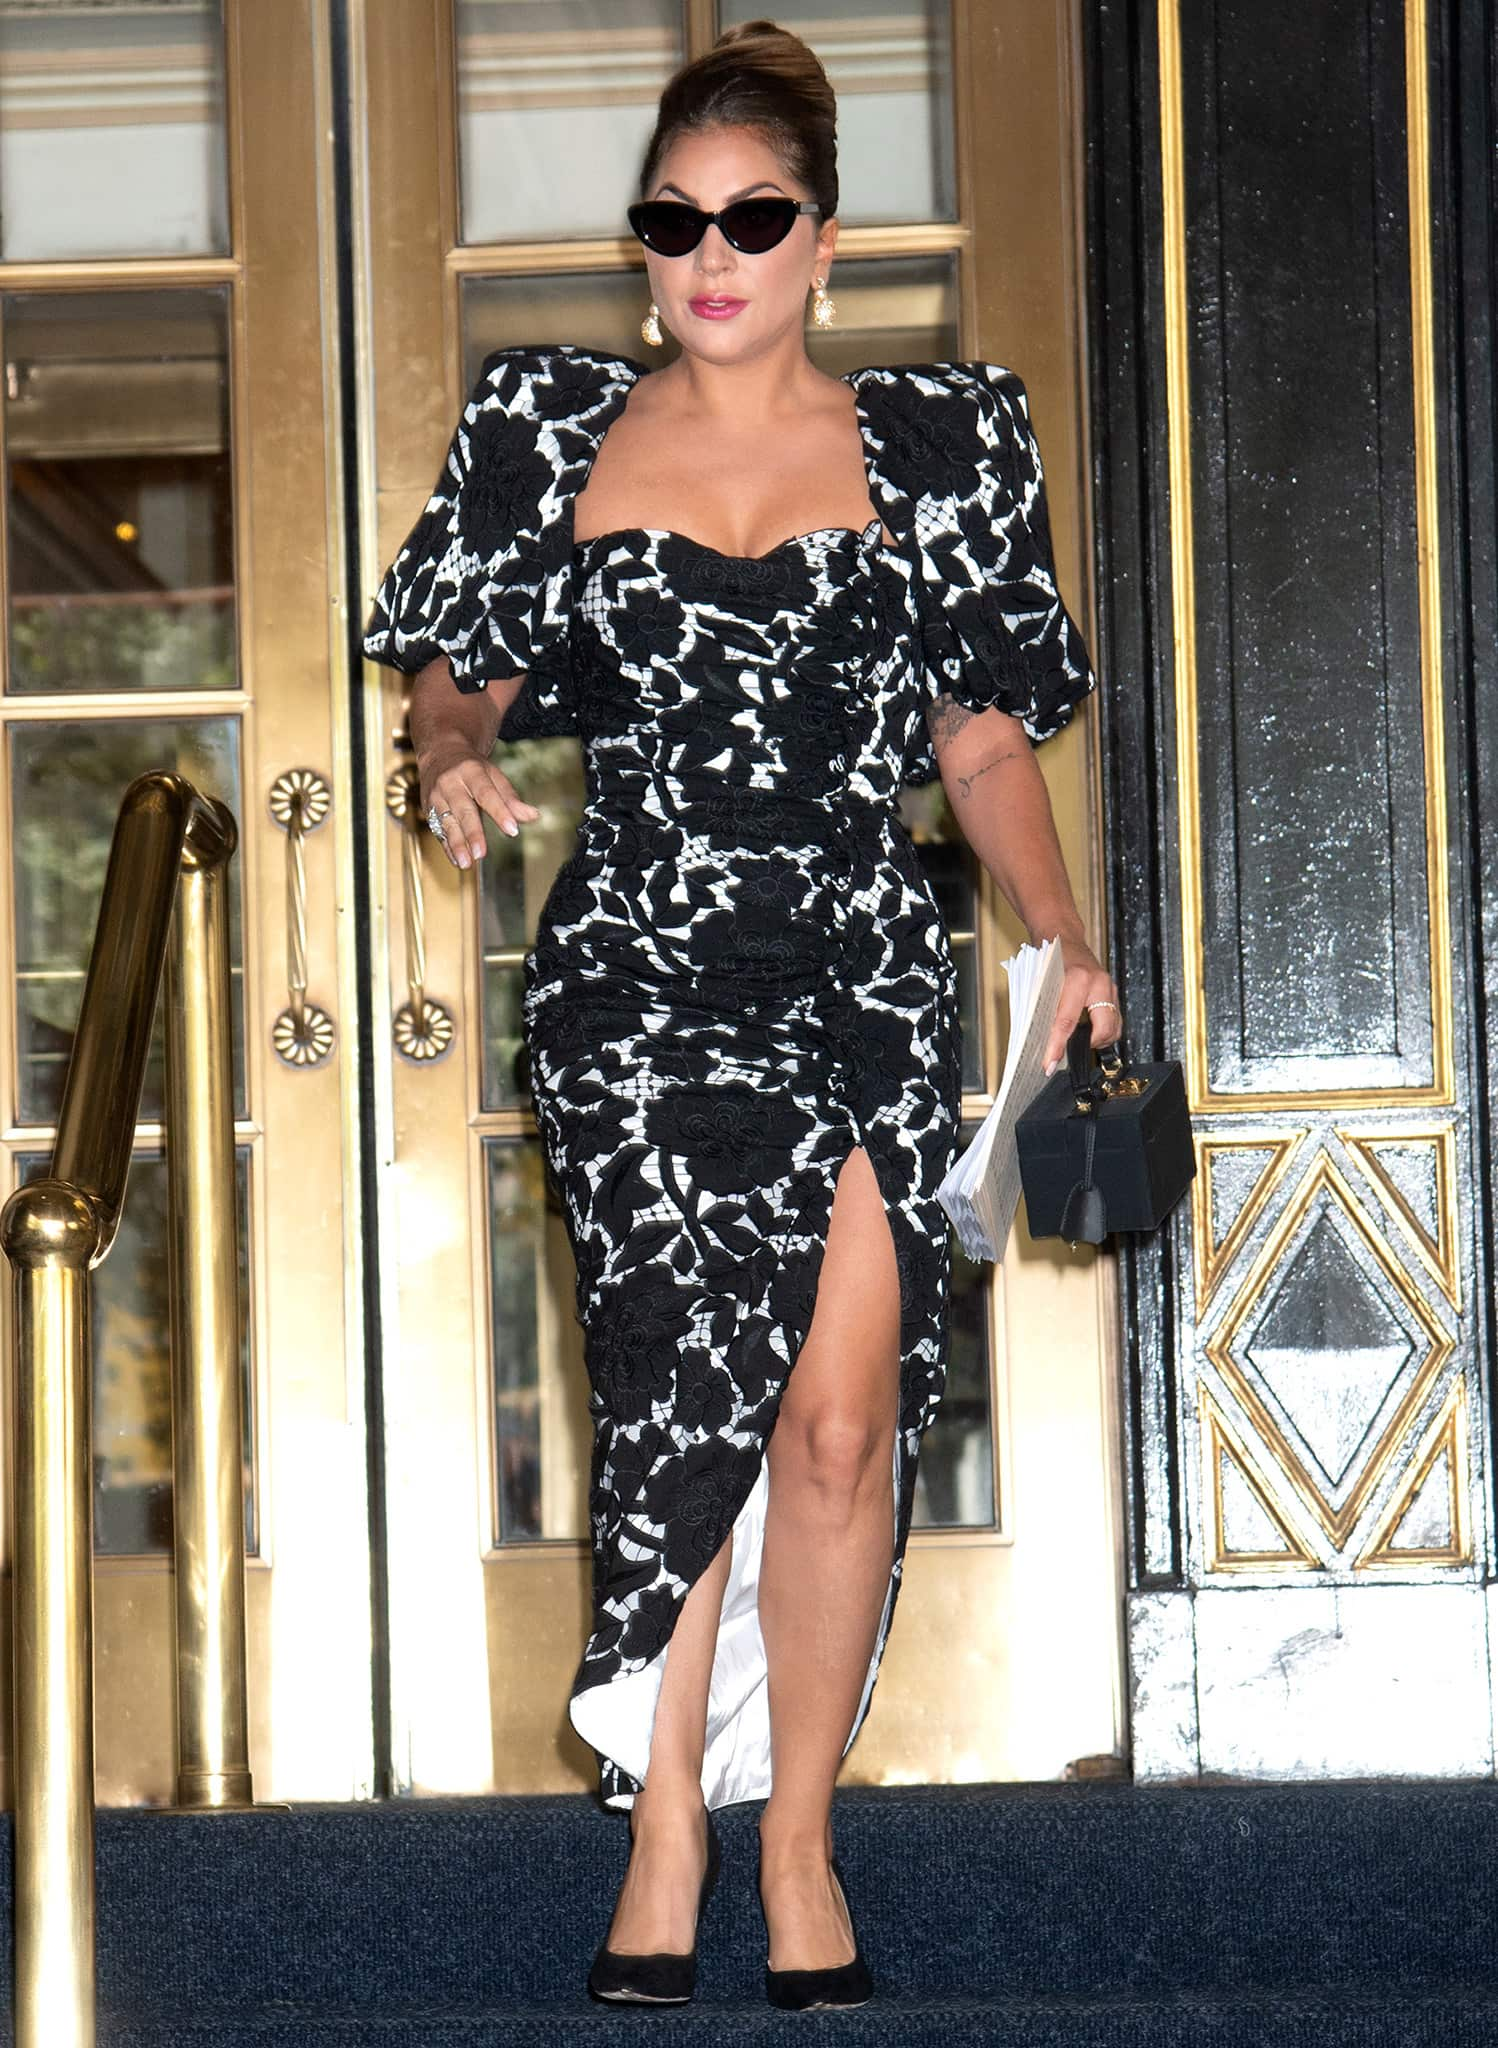 Lady Gaga steps out of her NYC hotel in an '80s-style gown on June 30, 2021